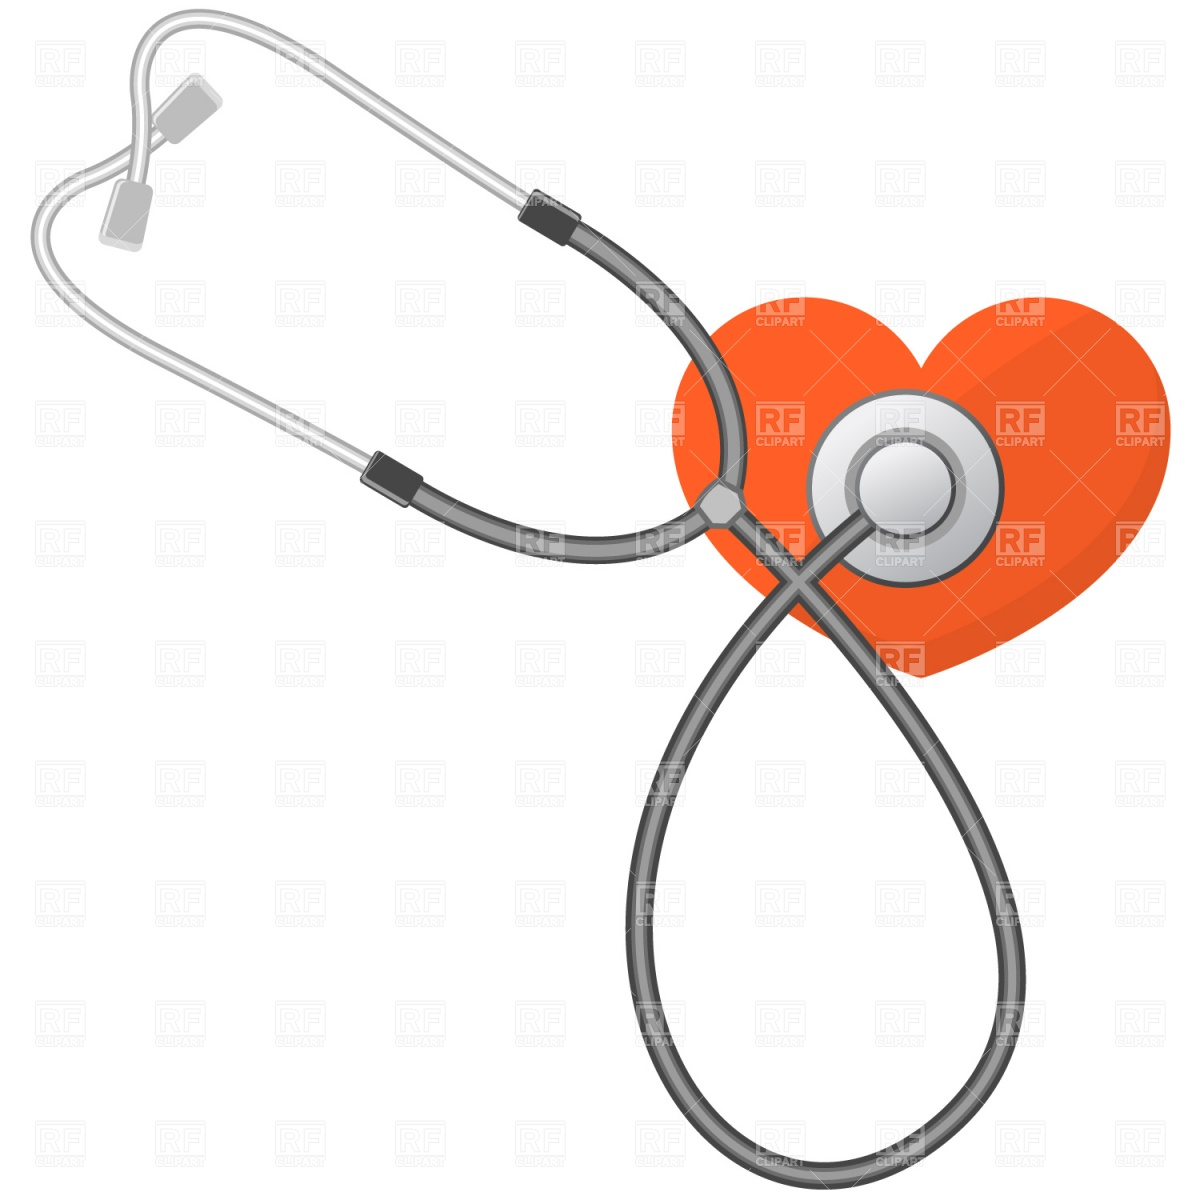 Free healthcare clipart images - Clipart-Free healthcare clipart images - ClipartFest-12